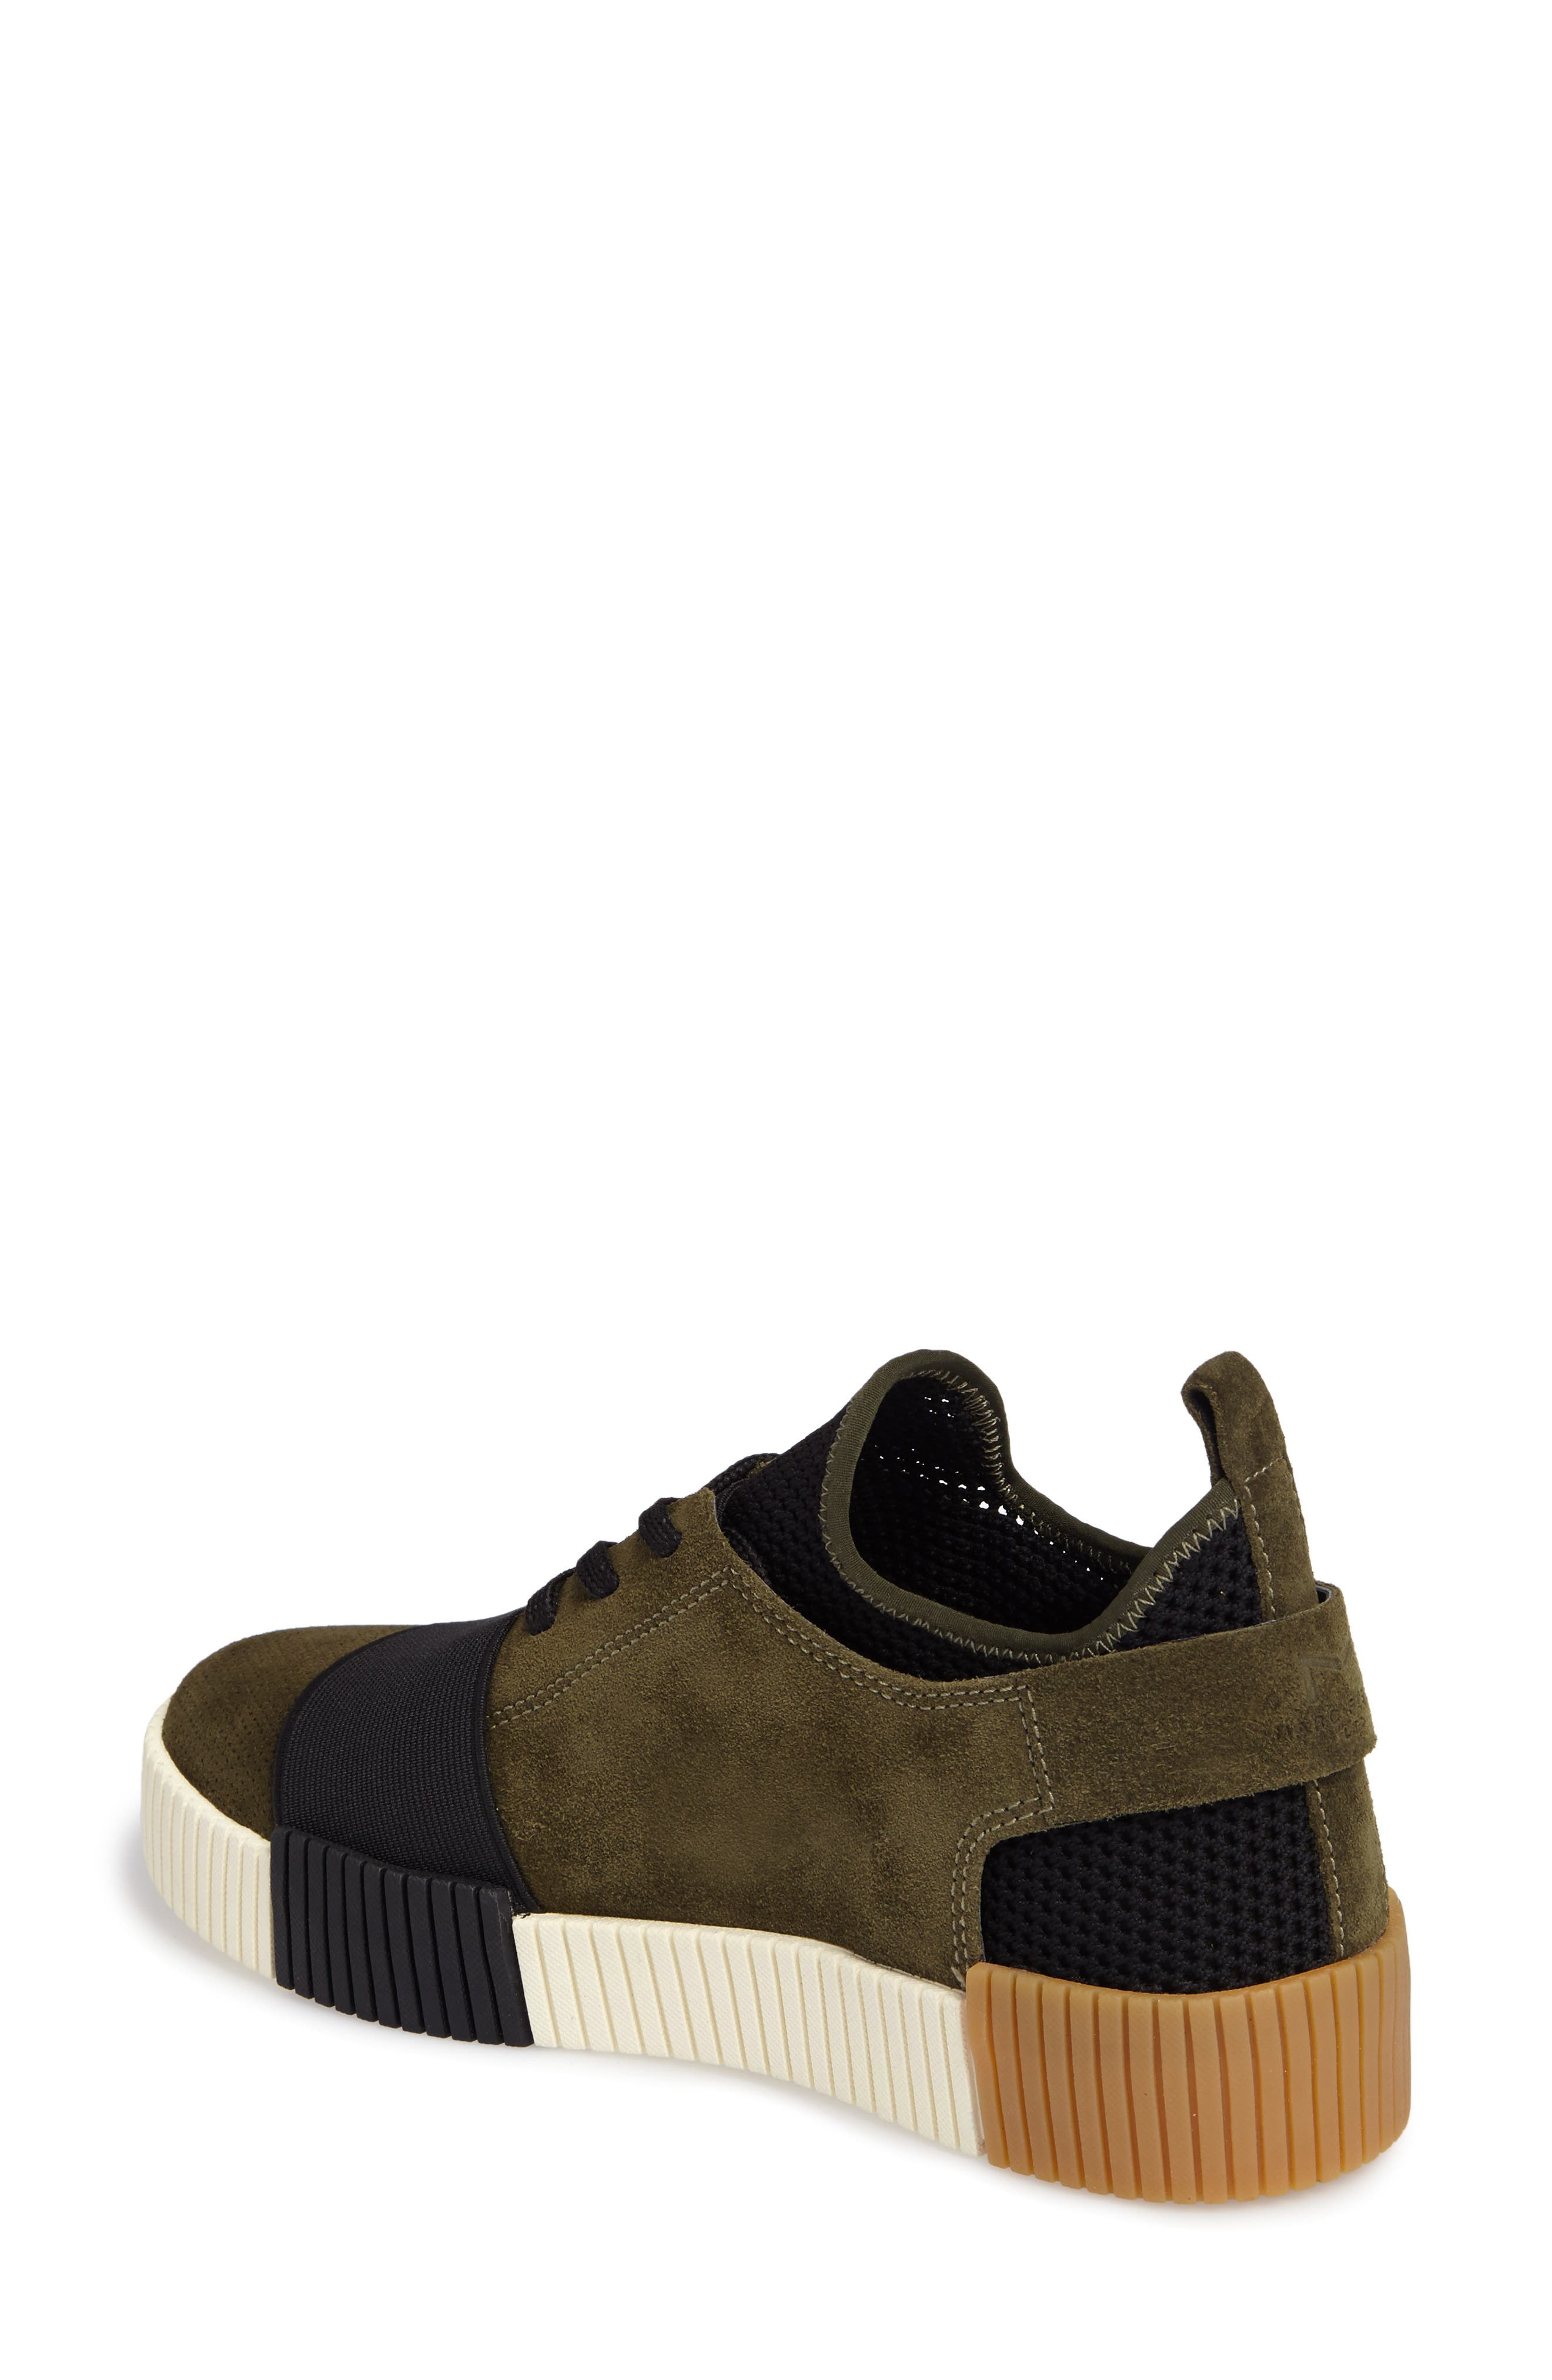 Ryley Platform Sneaker,                             Alternate thumbnail 2, color,                             Green Leather